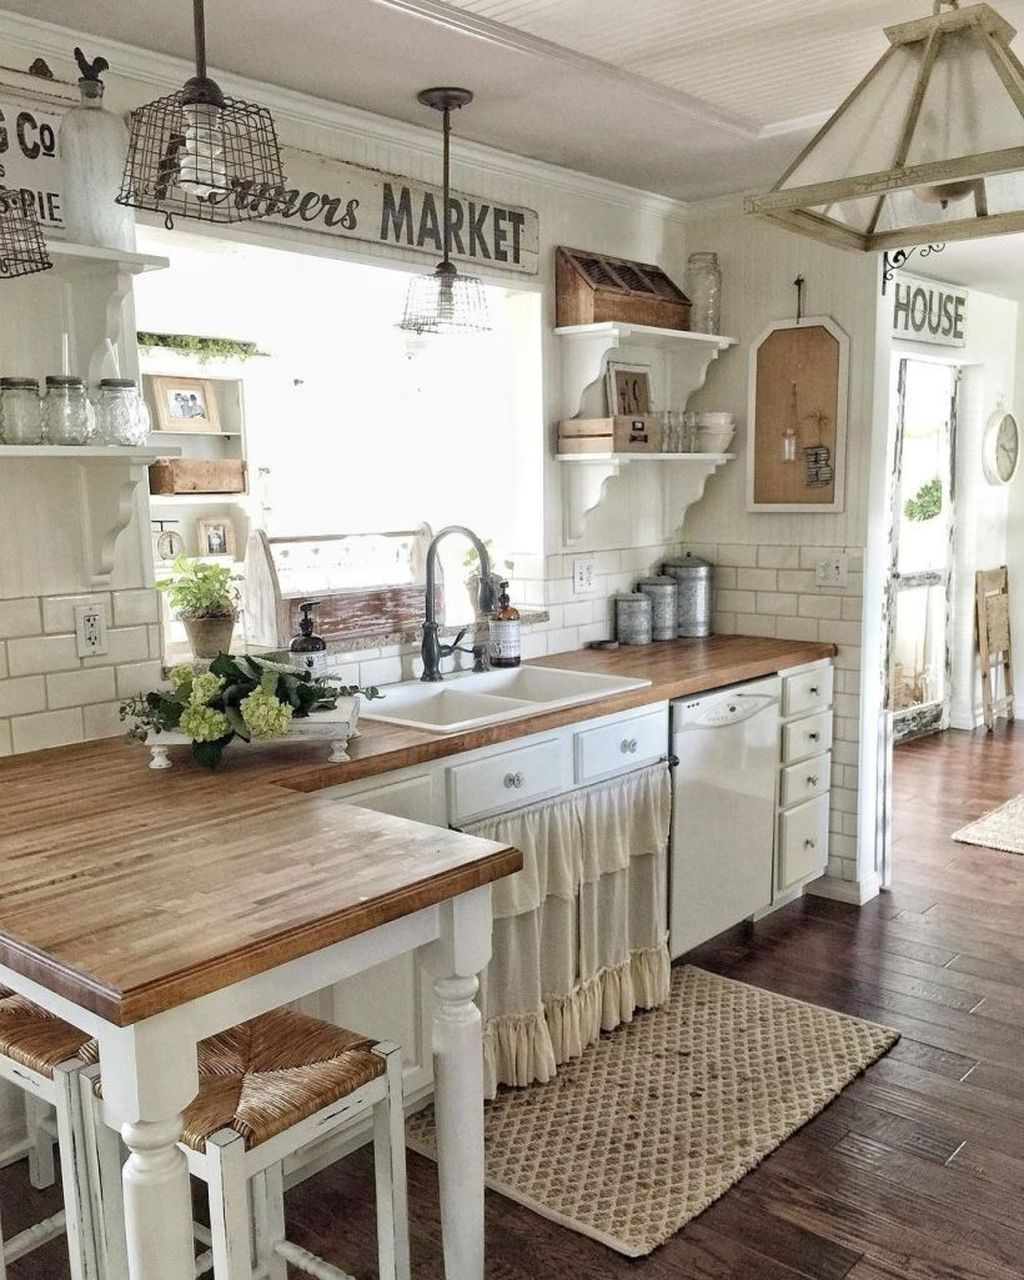 Budgeting For A Kitchen Remodel: 46 Popular Kitchen Remodel On A Budget